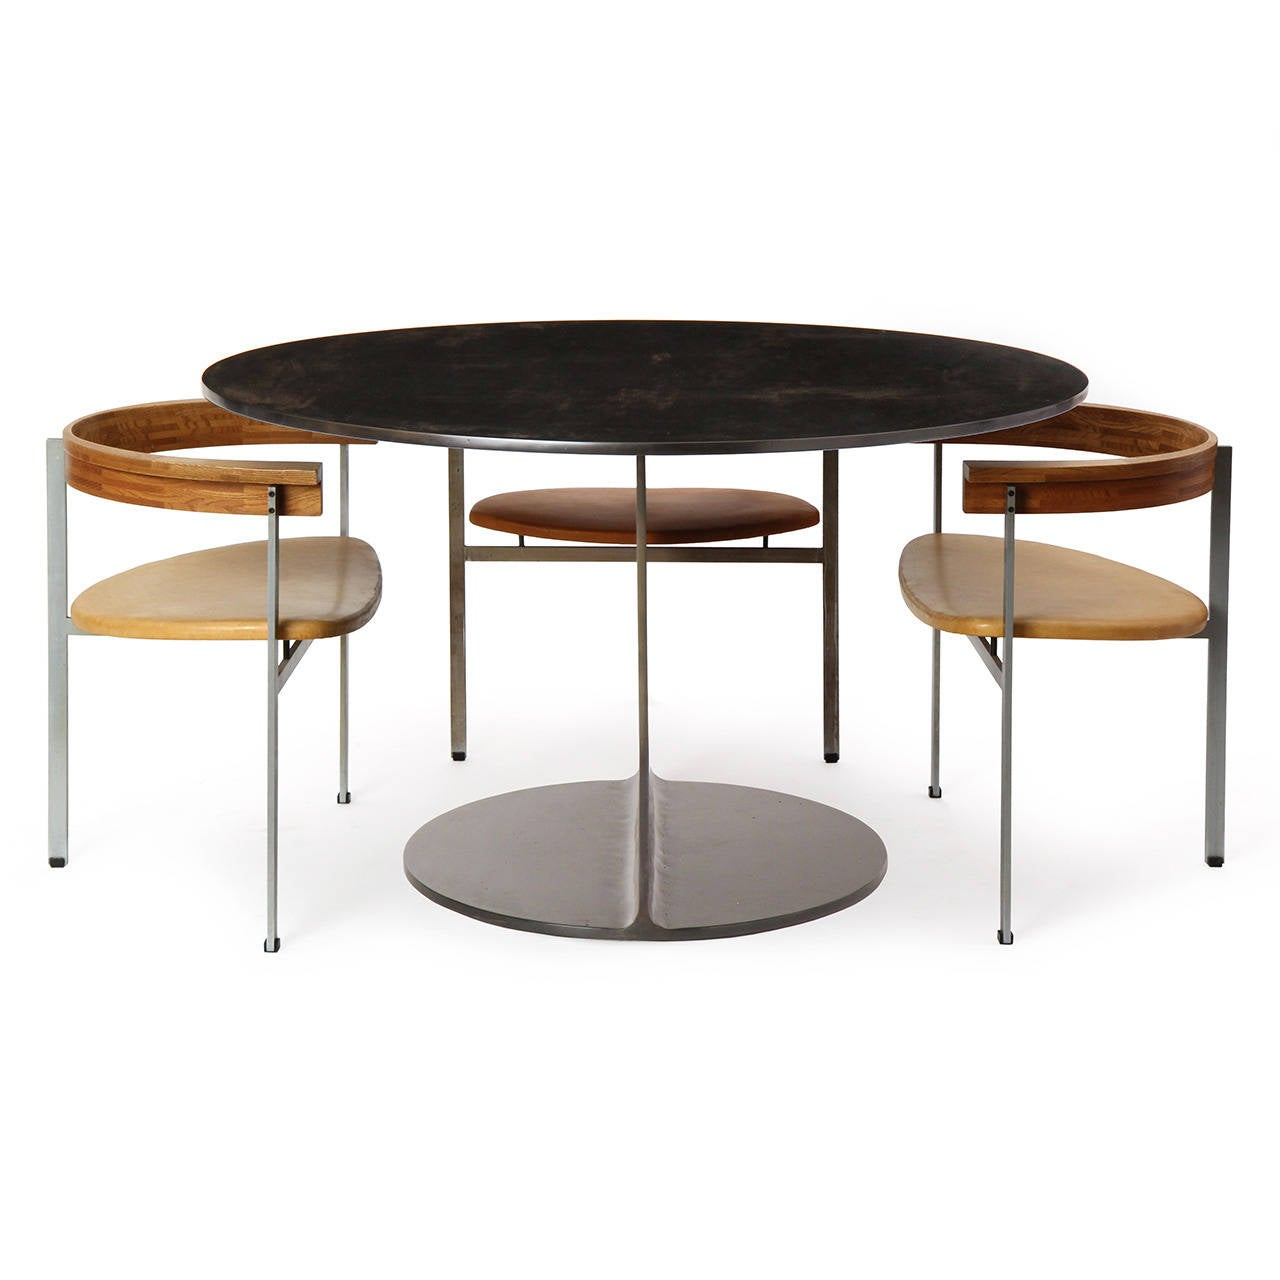 An I-Beam 'Gong' table of great weight and stability, crafted of cut, welded and blackened steel. The Gong tabel is made to order and takes 4-8 weeks to produce. Available in steel, stainless steel and bronze in brushed, satin, polished or blackened